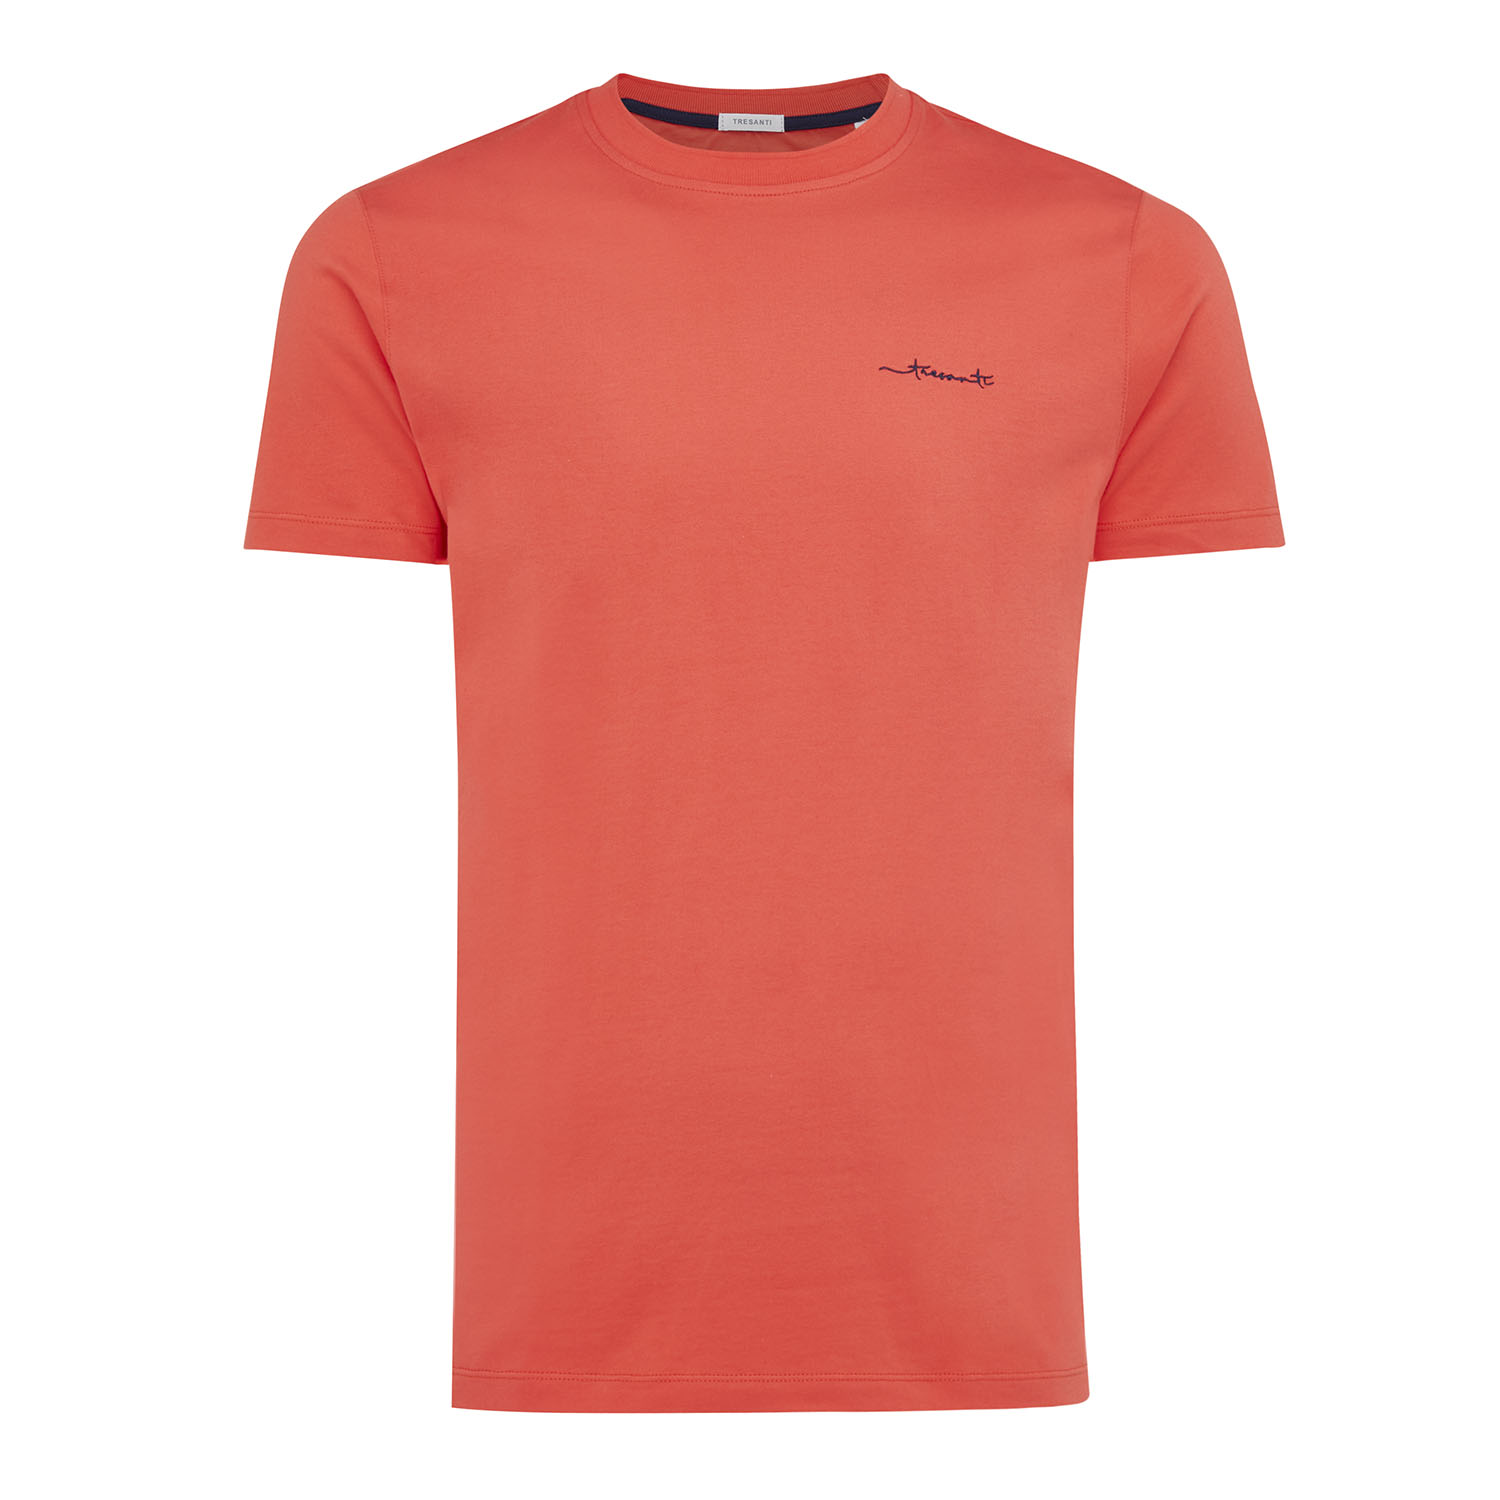 Mauro | T-shirt TRESANTI embroidery red